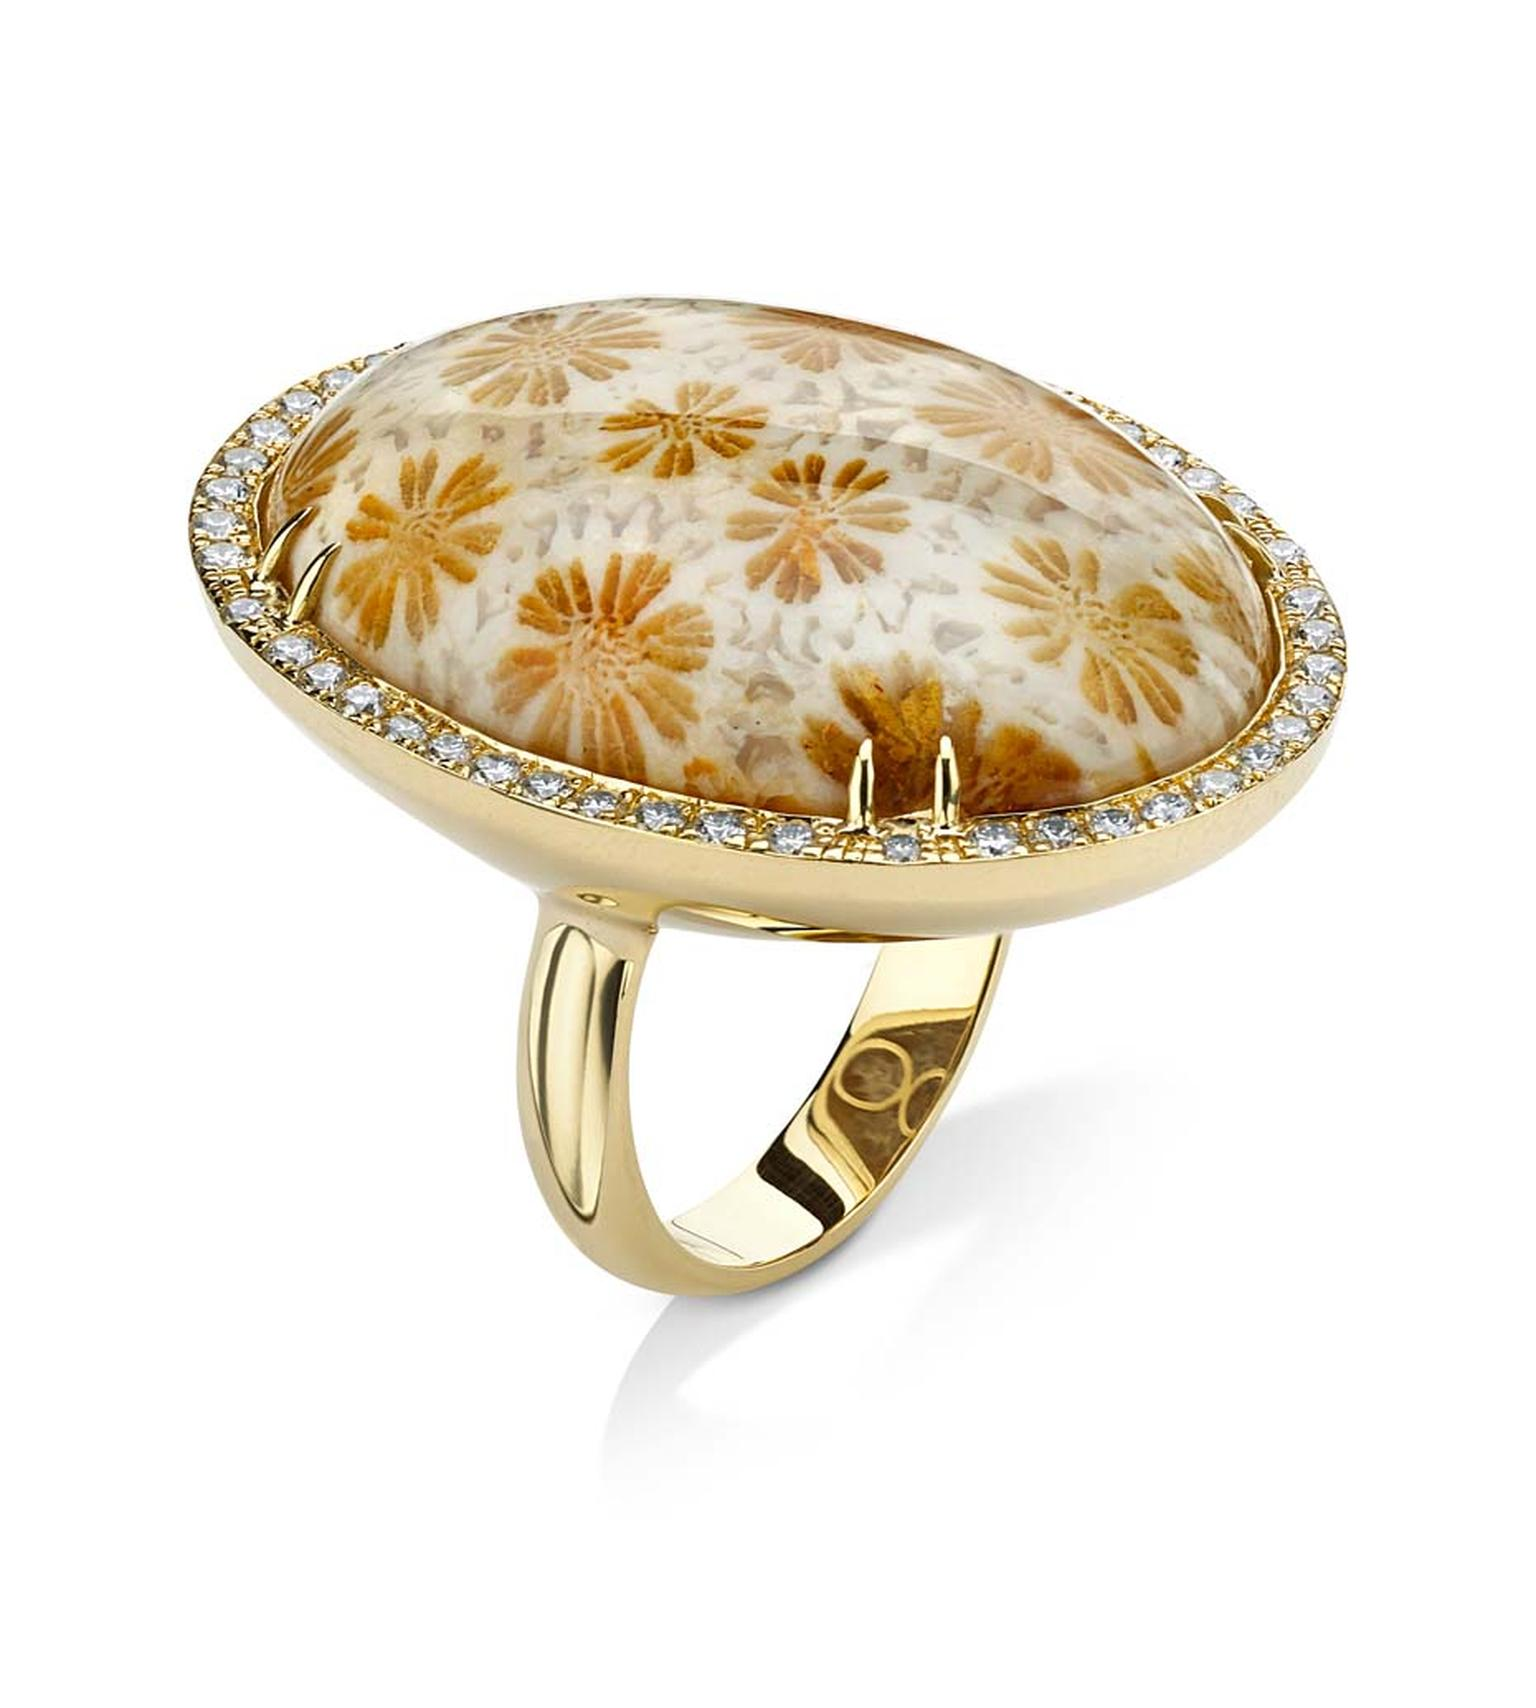 Pamela Huizenga gold ring with a 34.10ct fossilzed coral surrounded by a diamond pavé frame ($10,400).